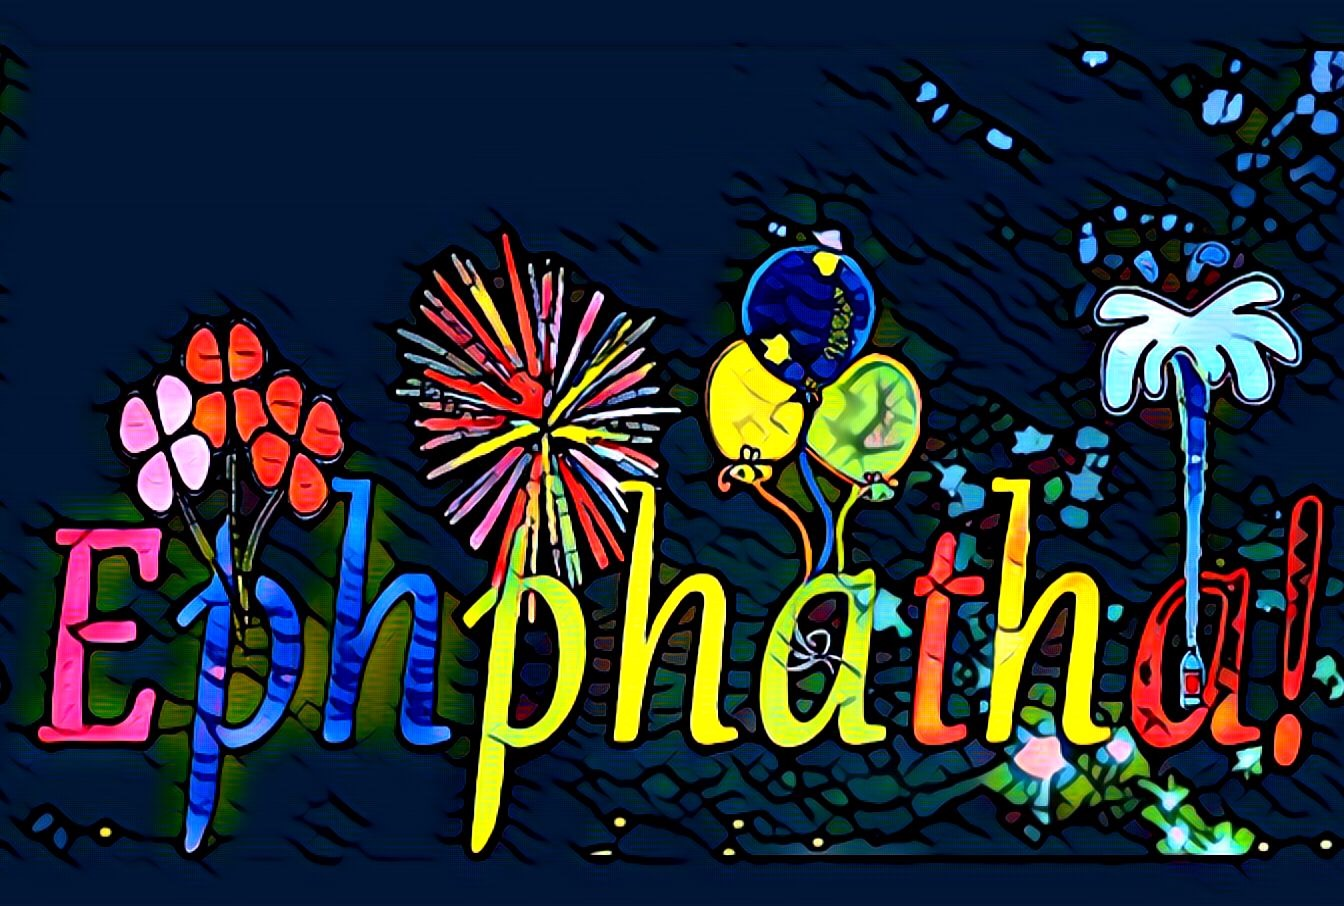 Ephphatha: The Power of Knowledge